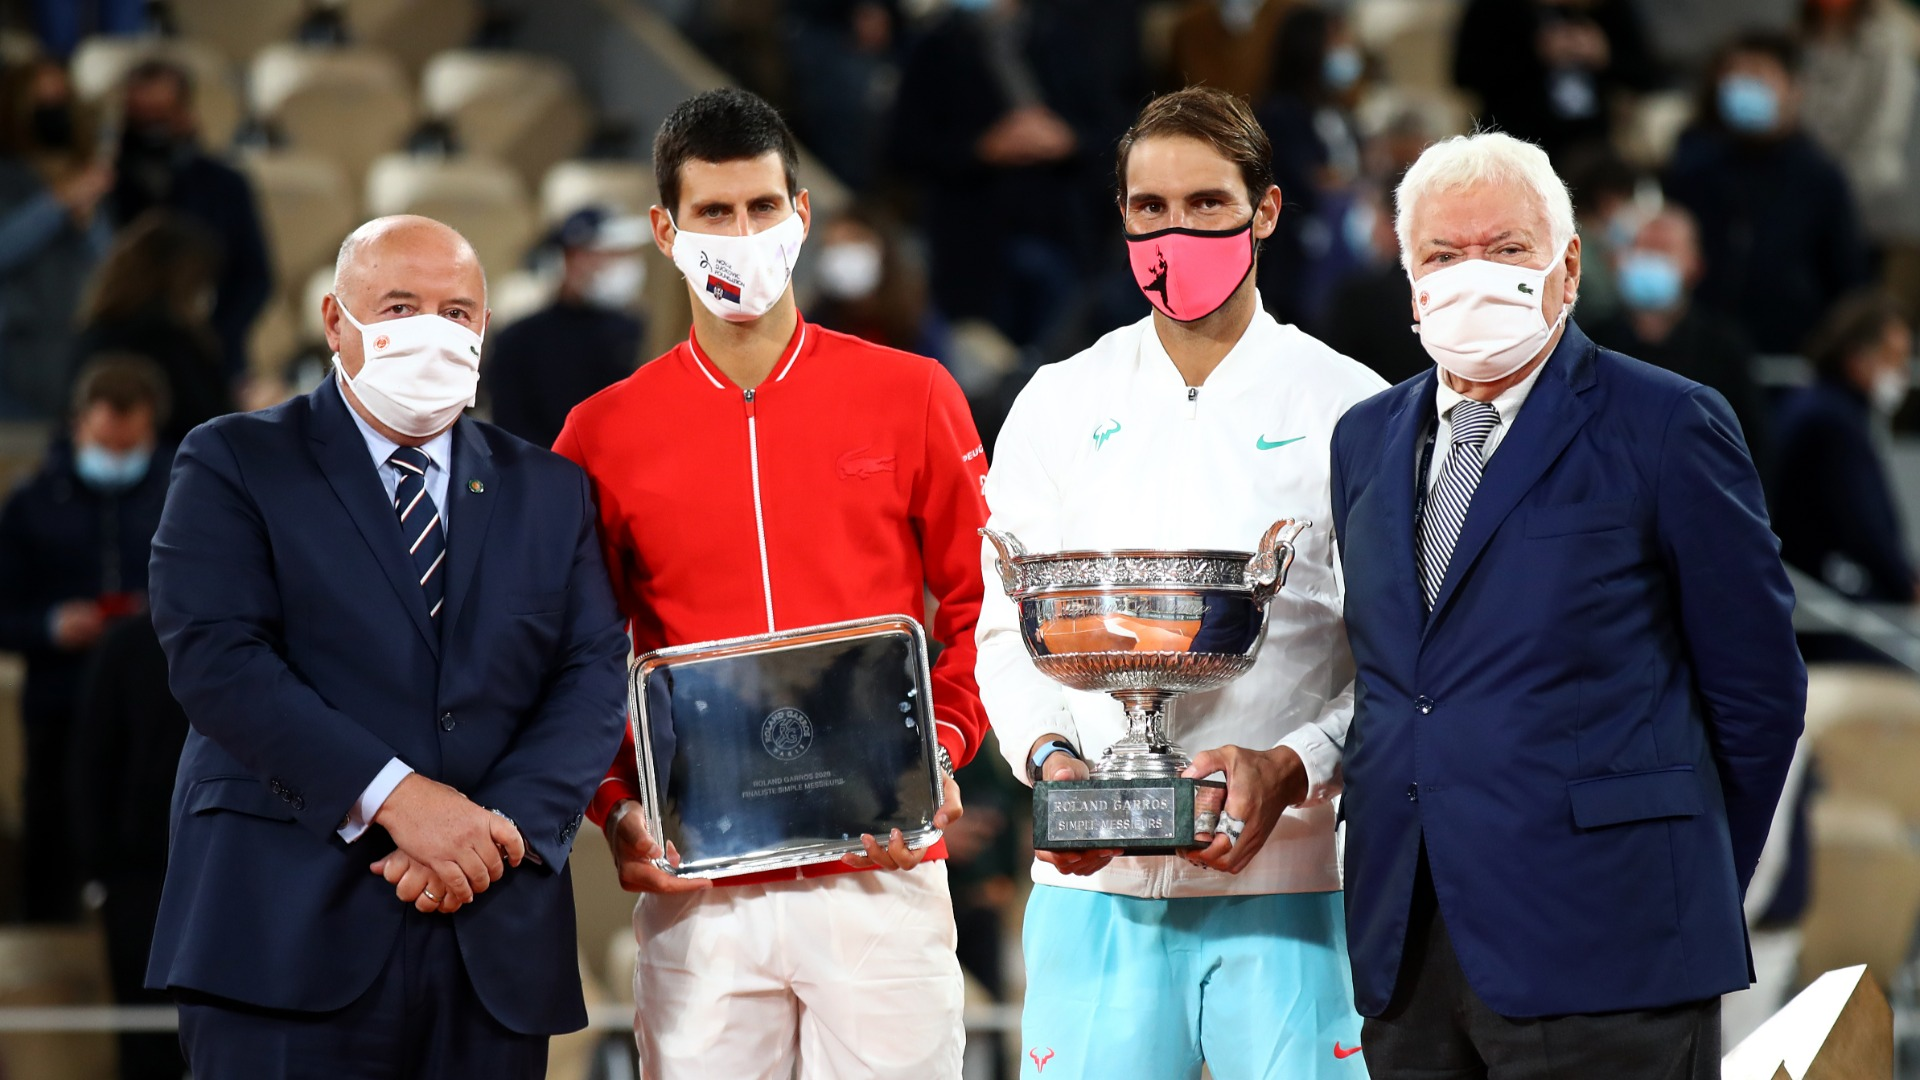 French Open 2020: Djokovic needs no excuse for losing to 'perfect' Nadal